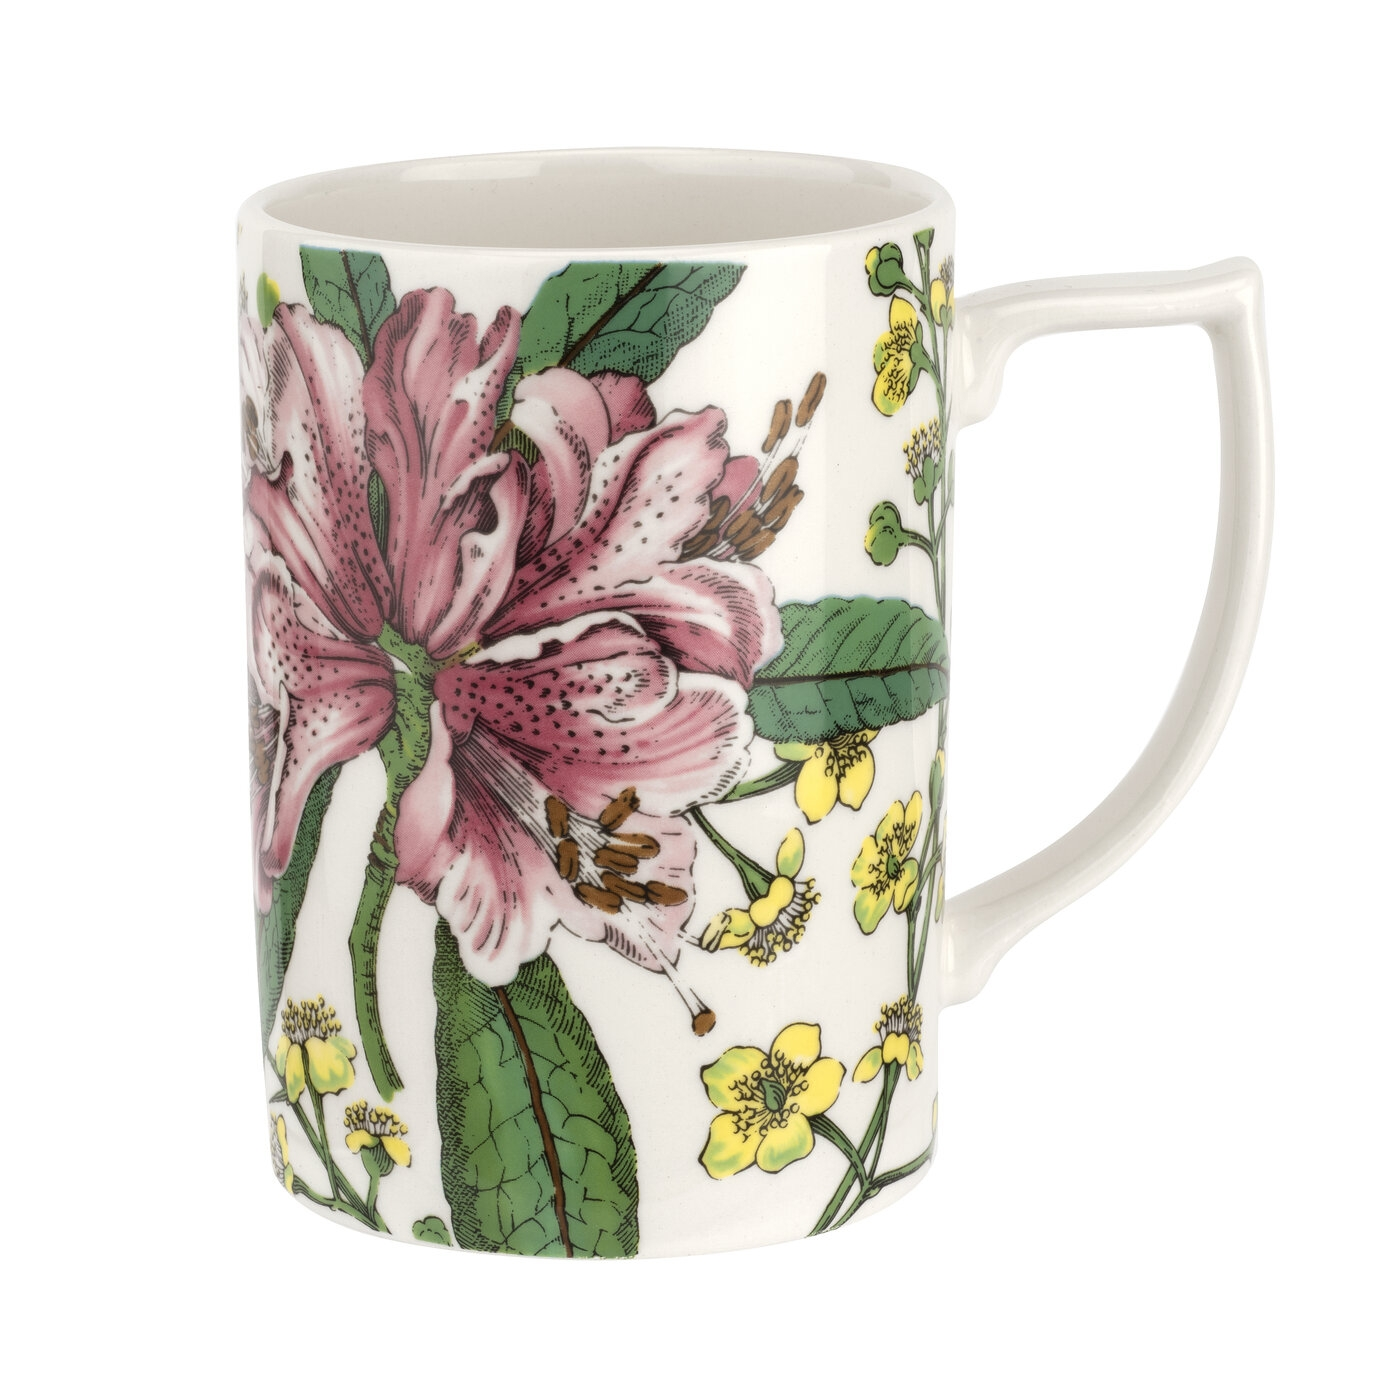 Spode Stafford Blooms 12 Ounce Mug image number 0